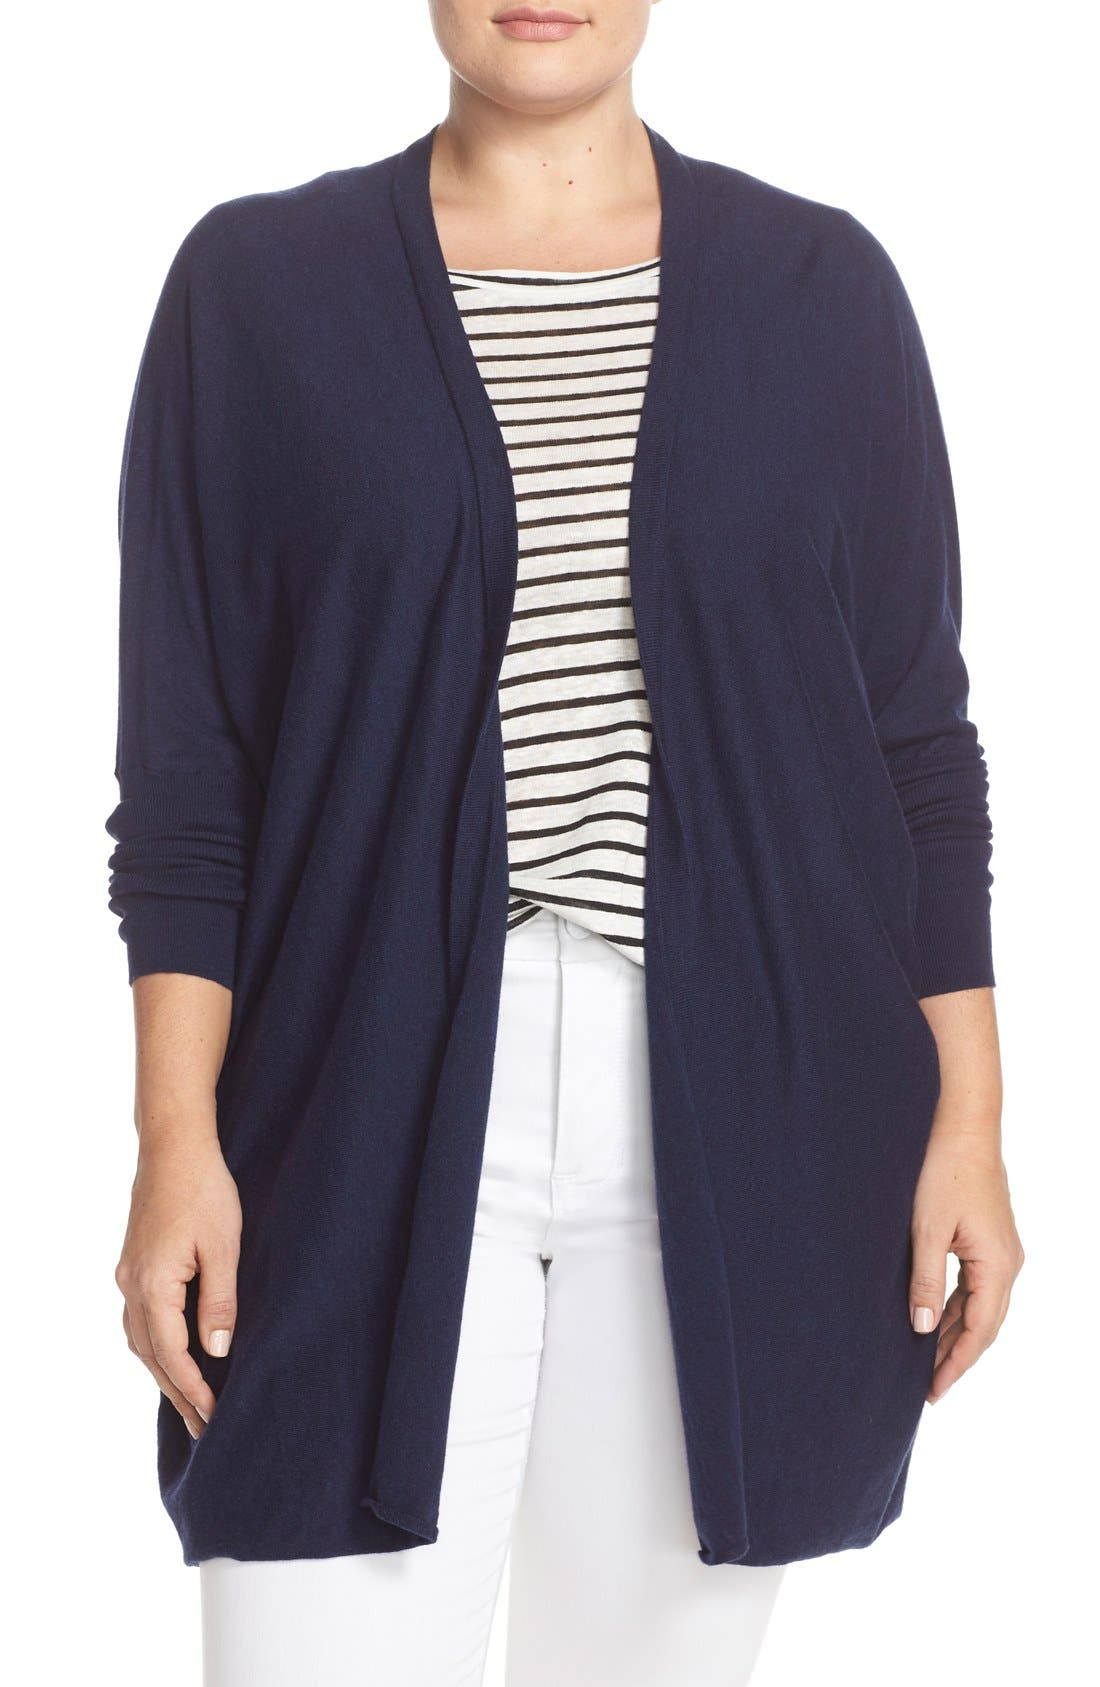 'Darma' Cotton & Cashmere Knit Cardigan,                             Main thumbnail 1, color,                             Melange Navy